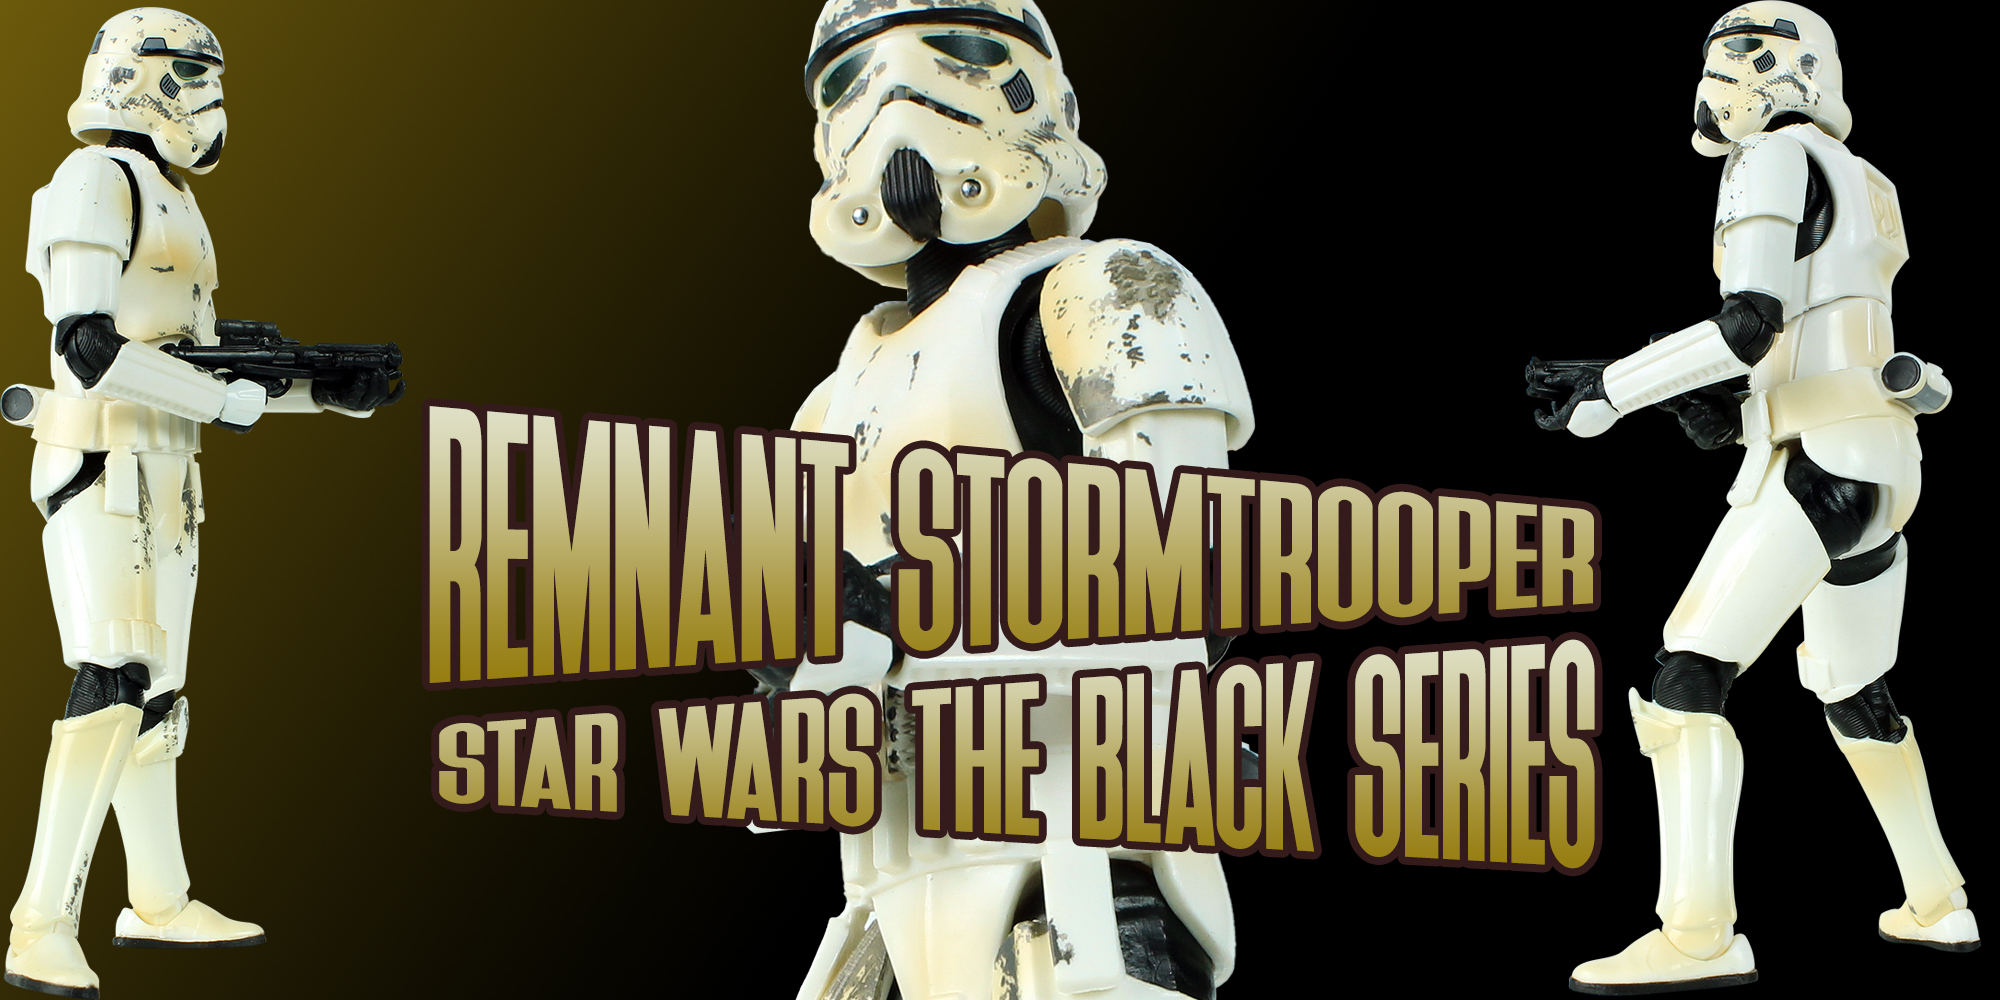 Black Series Remnant Stormtrooper